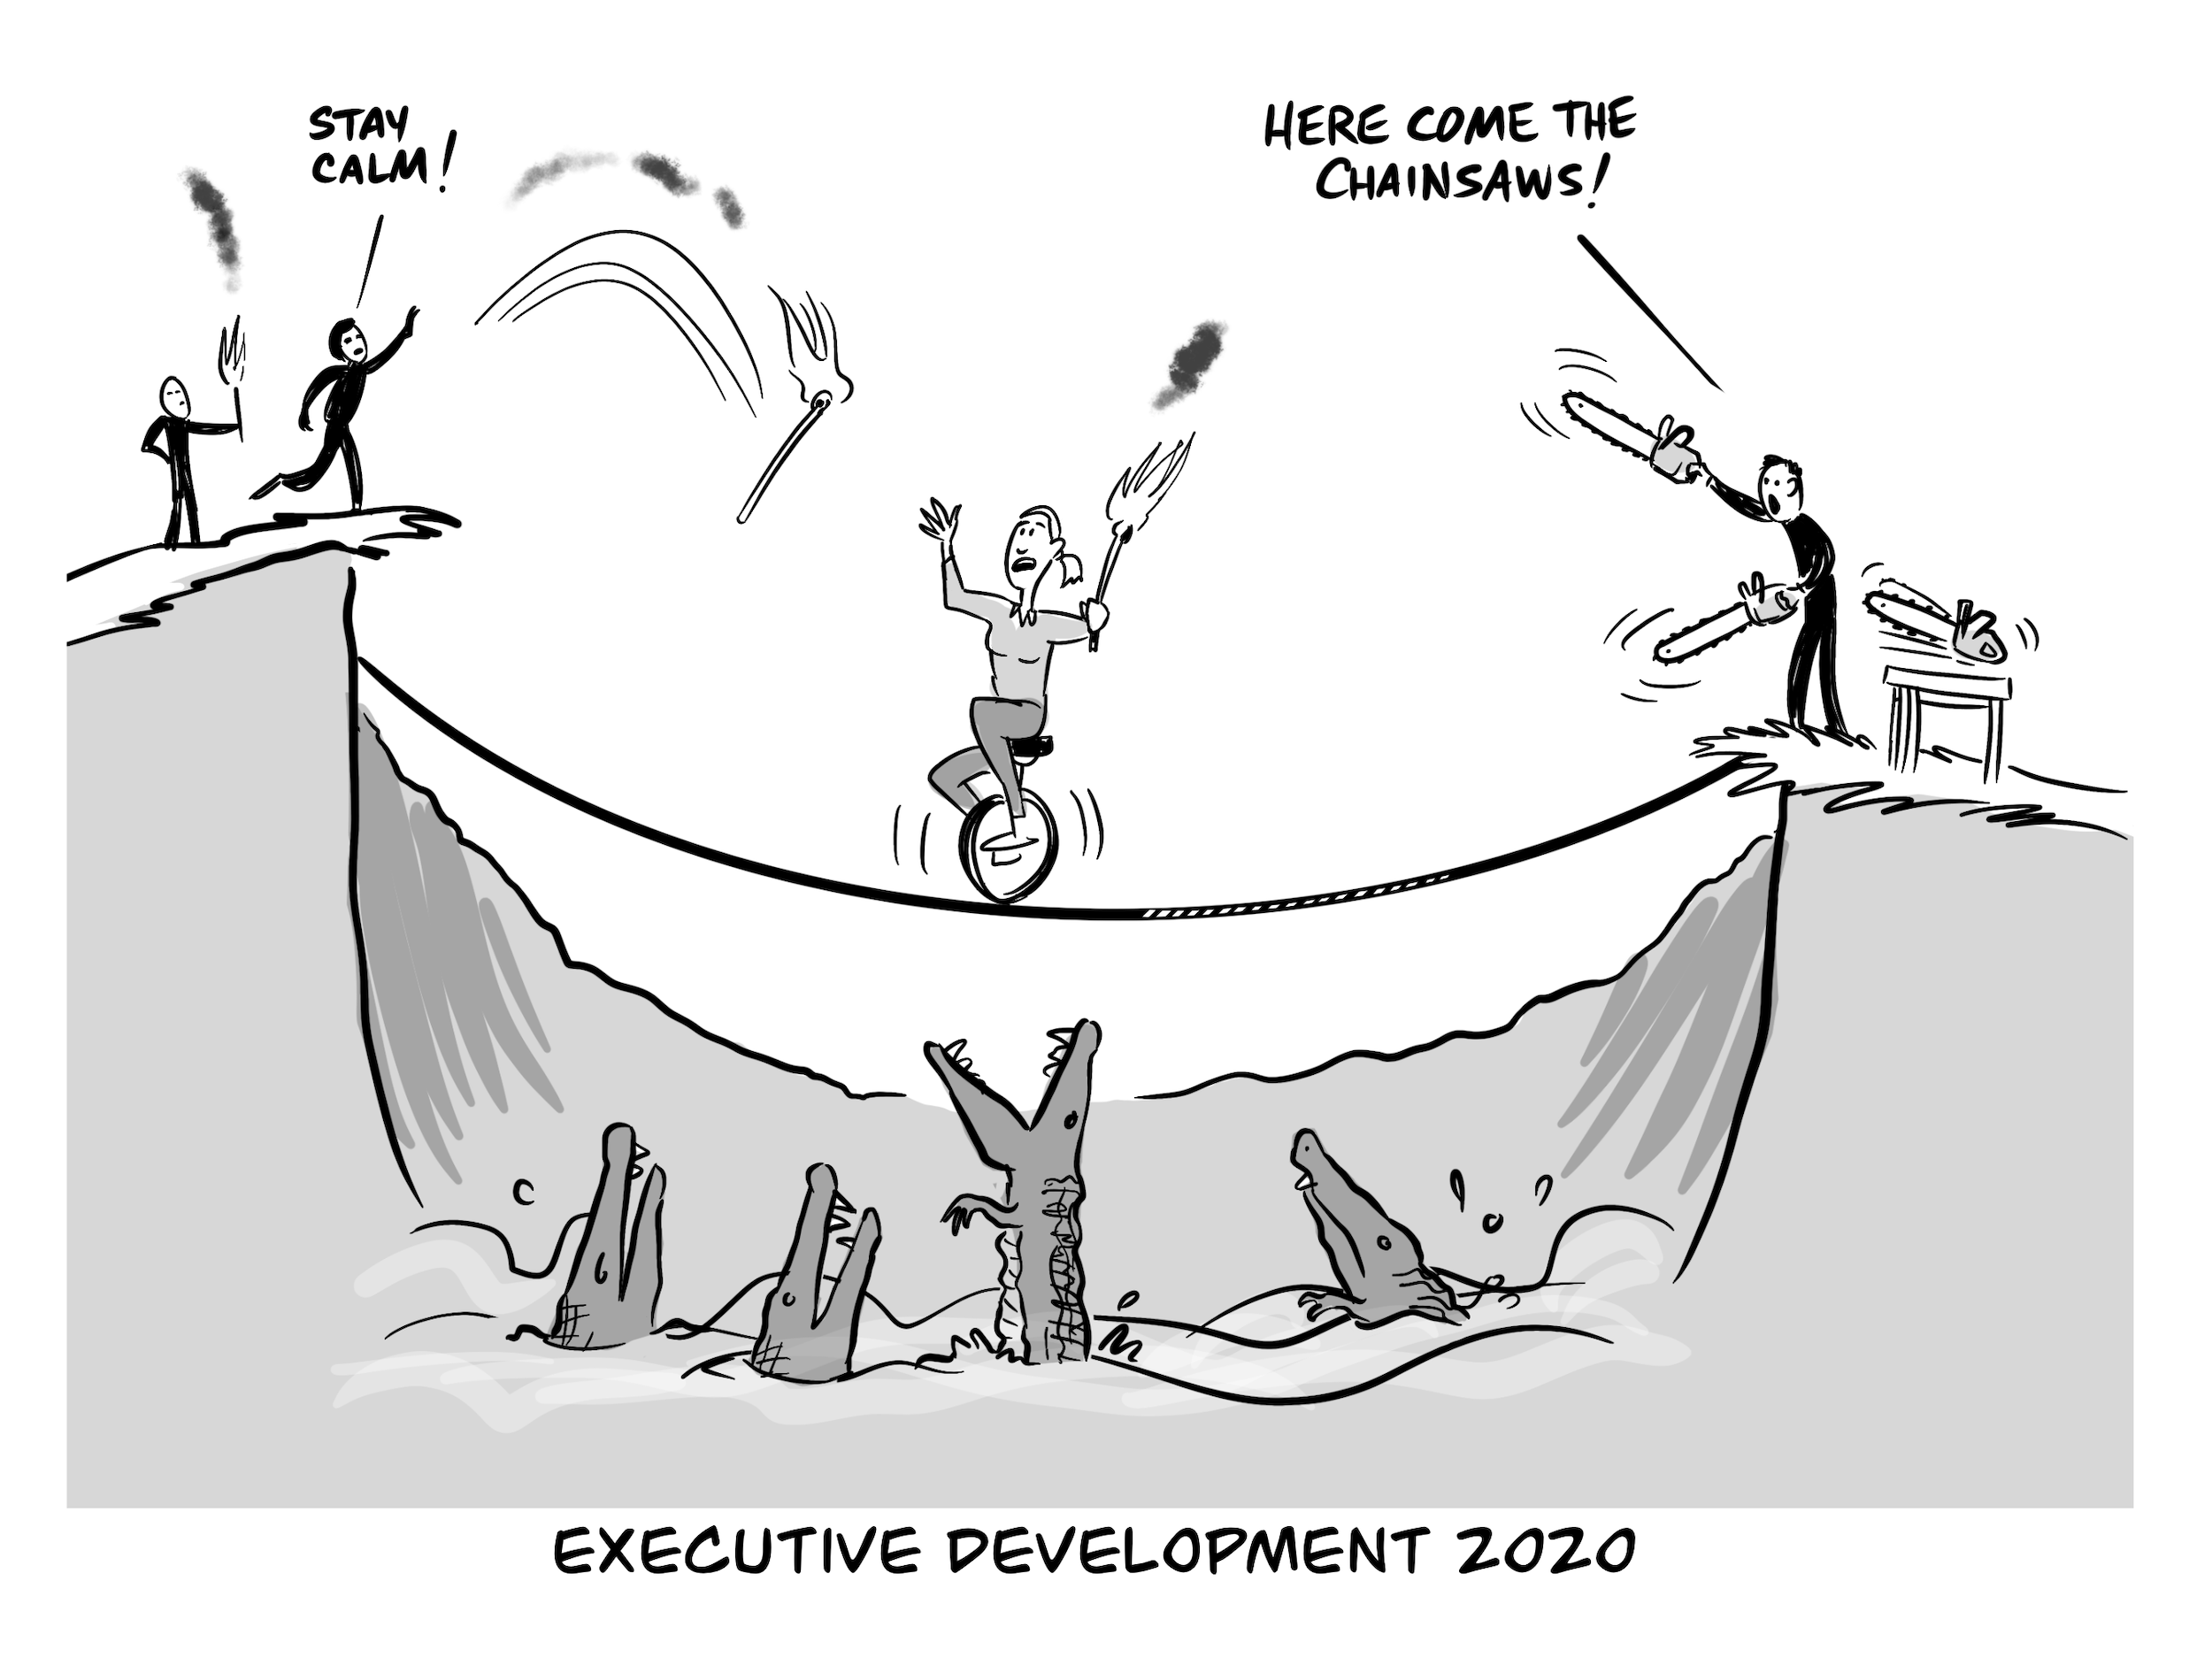 Executive Development 2020